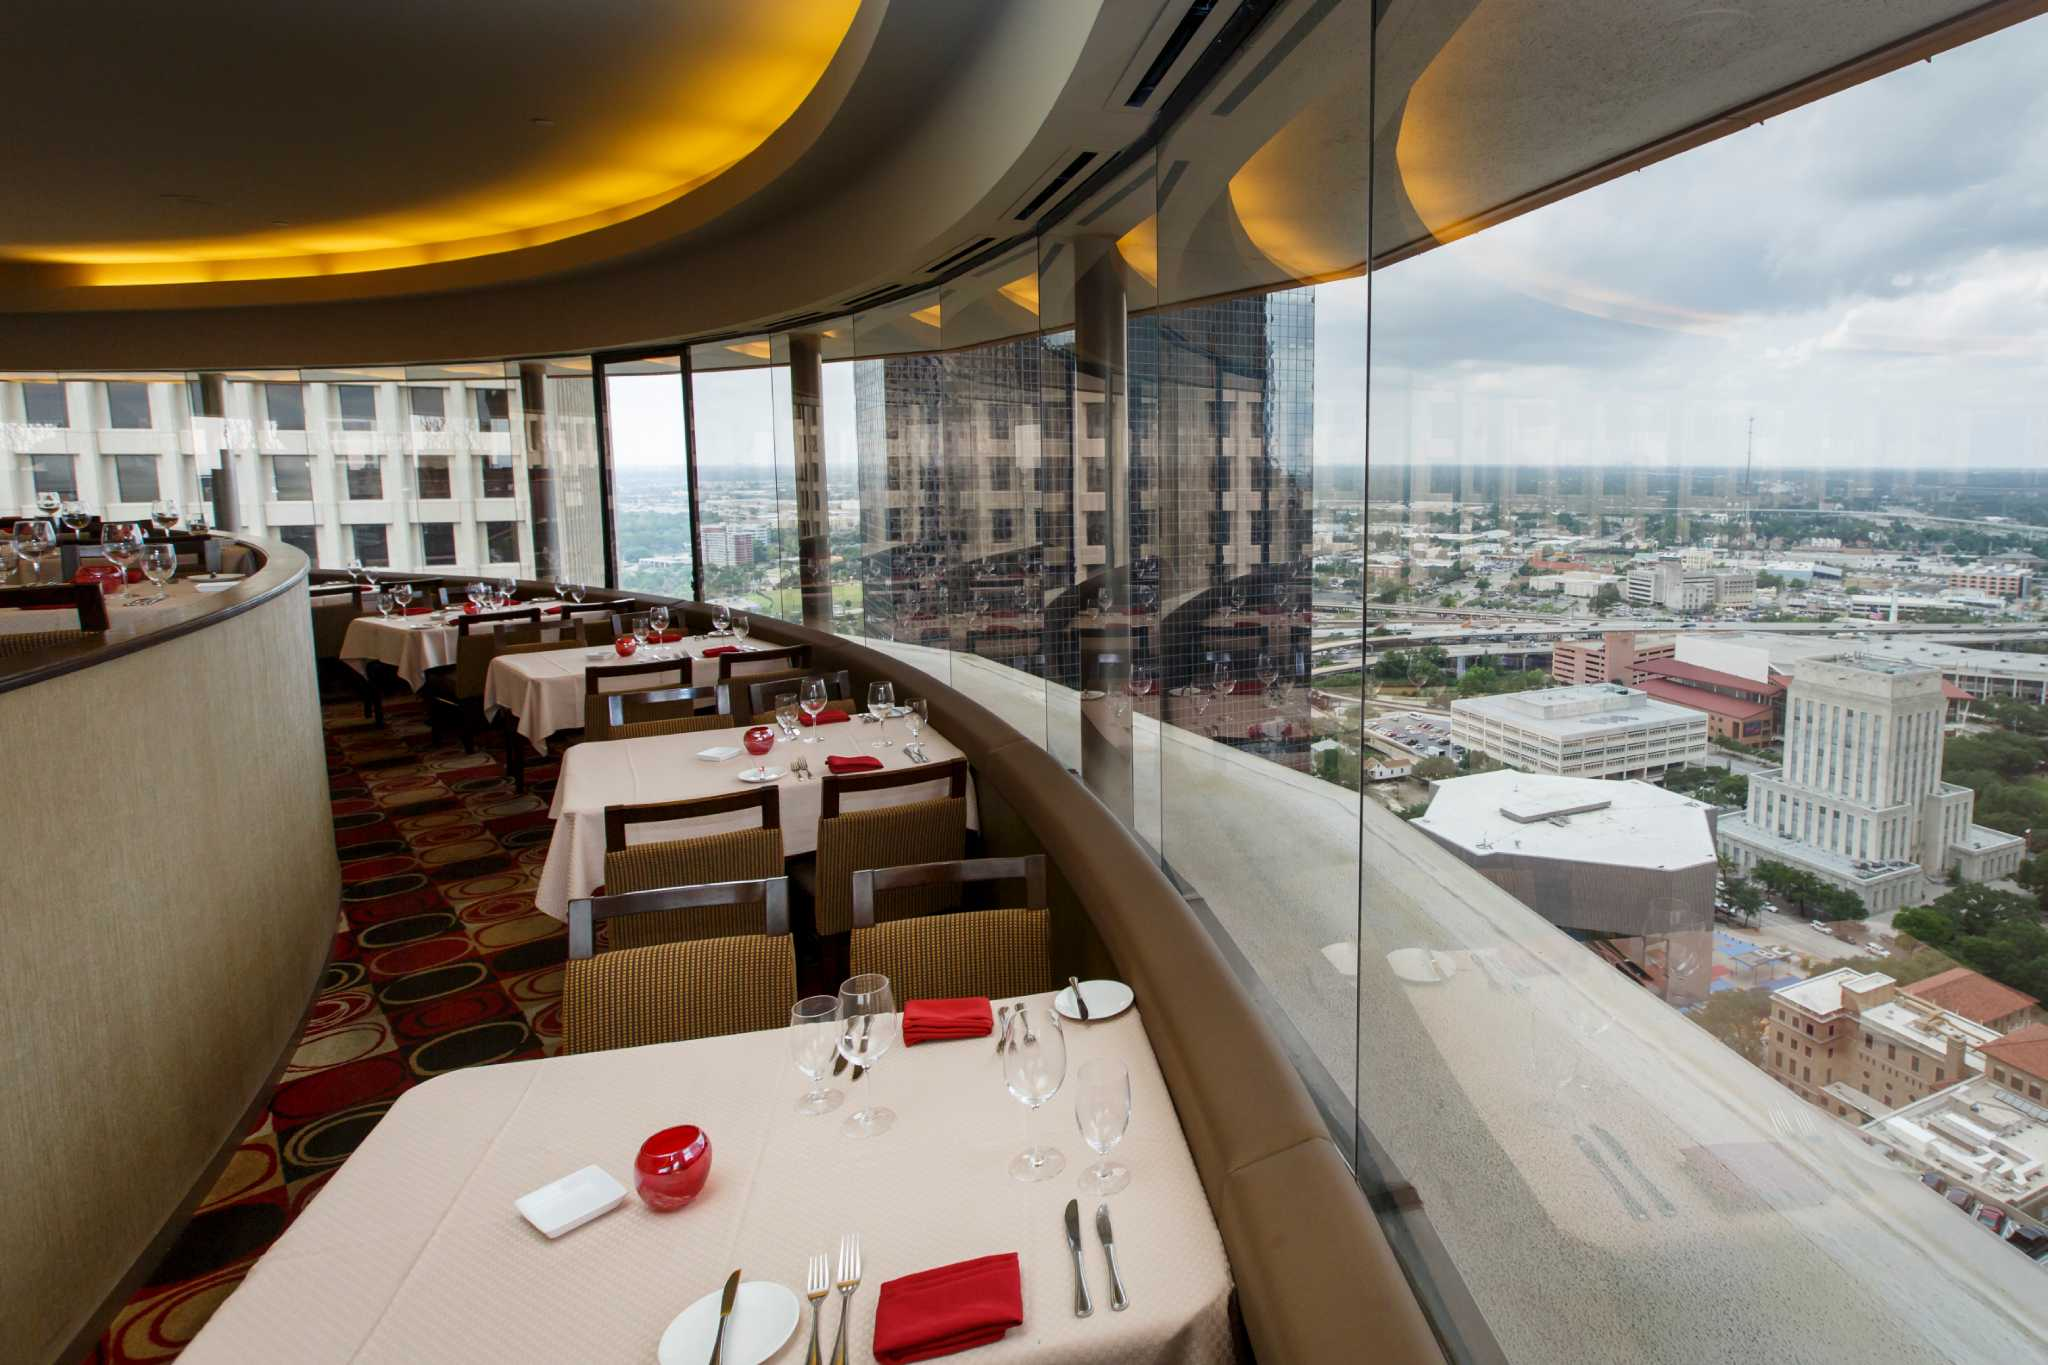 OpenTable Names Spindletop Houstons Most Scenic Restaurant - Open table houston